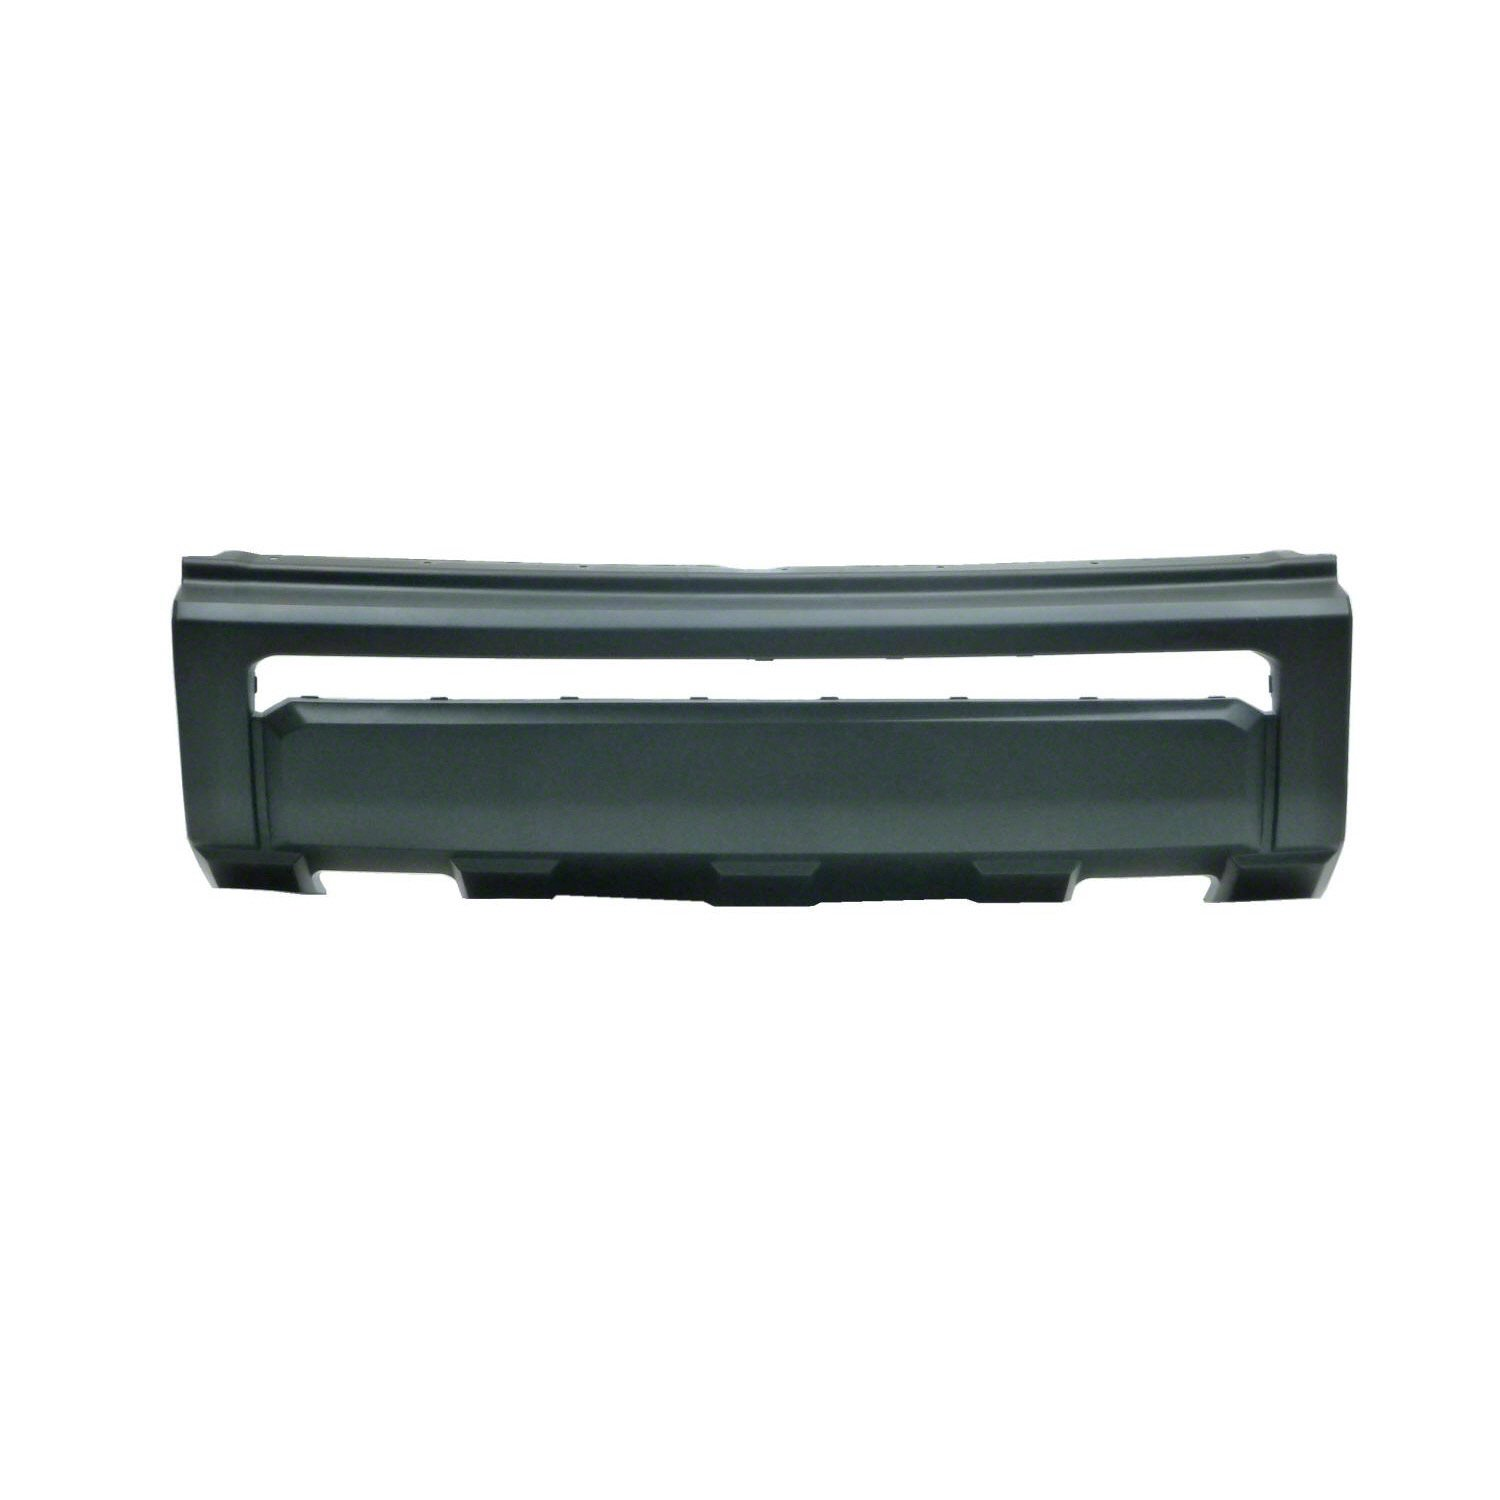 Crash Parts Plus Front Bumper Cover for 14-15 Toyota Tundra TO1000404